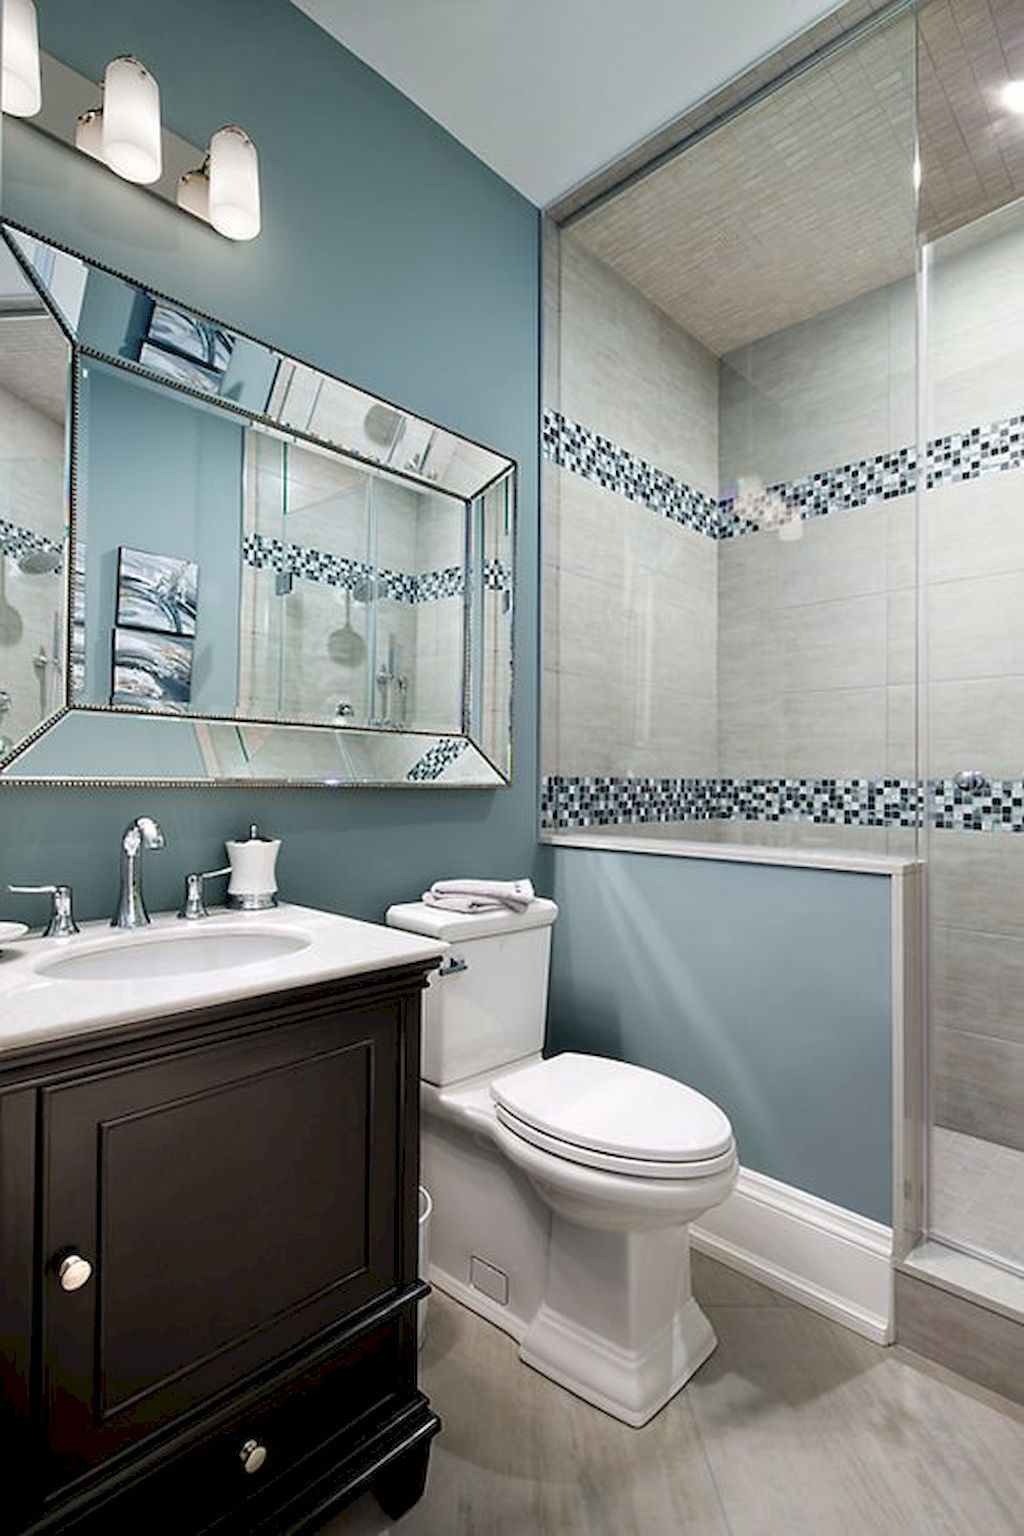 Knowing How Or Where To Start With A Bathroom Remodel Can Be Overwhelming For Any Homeowner